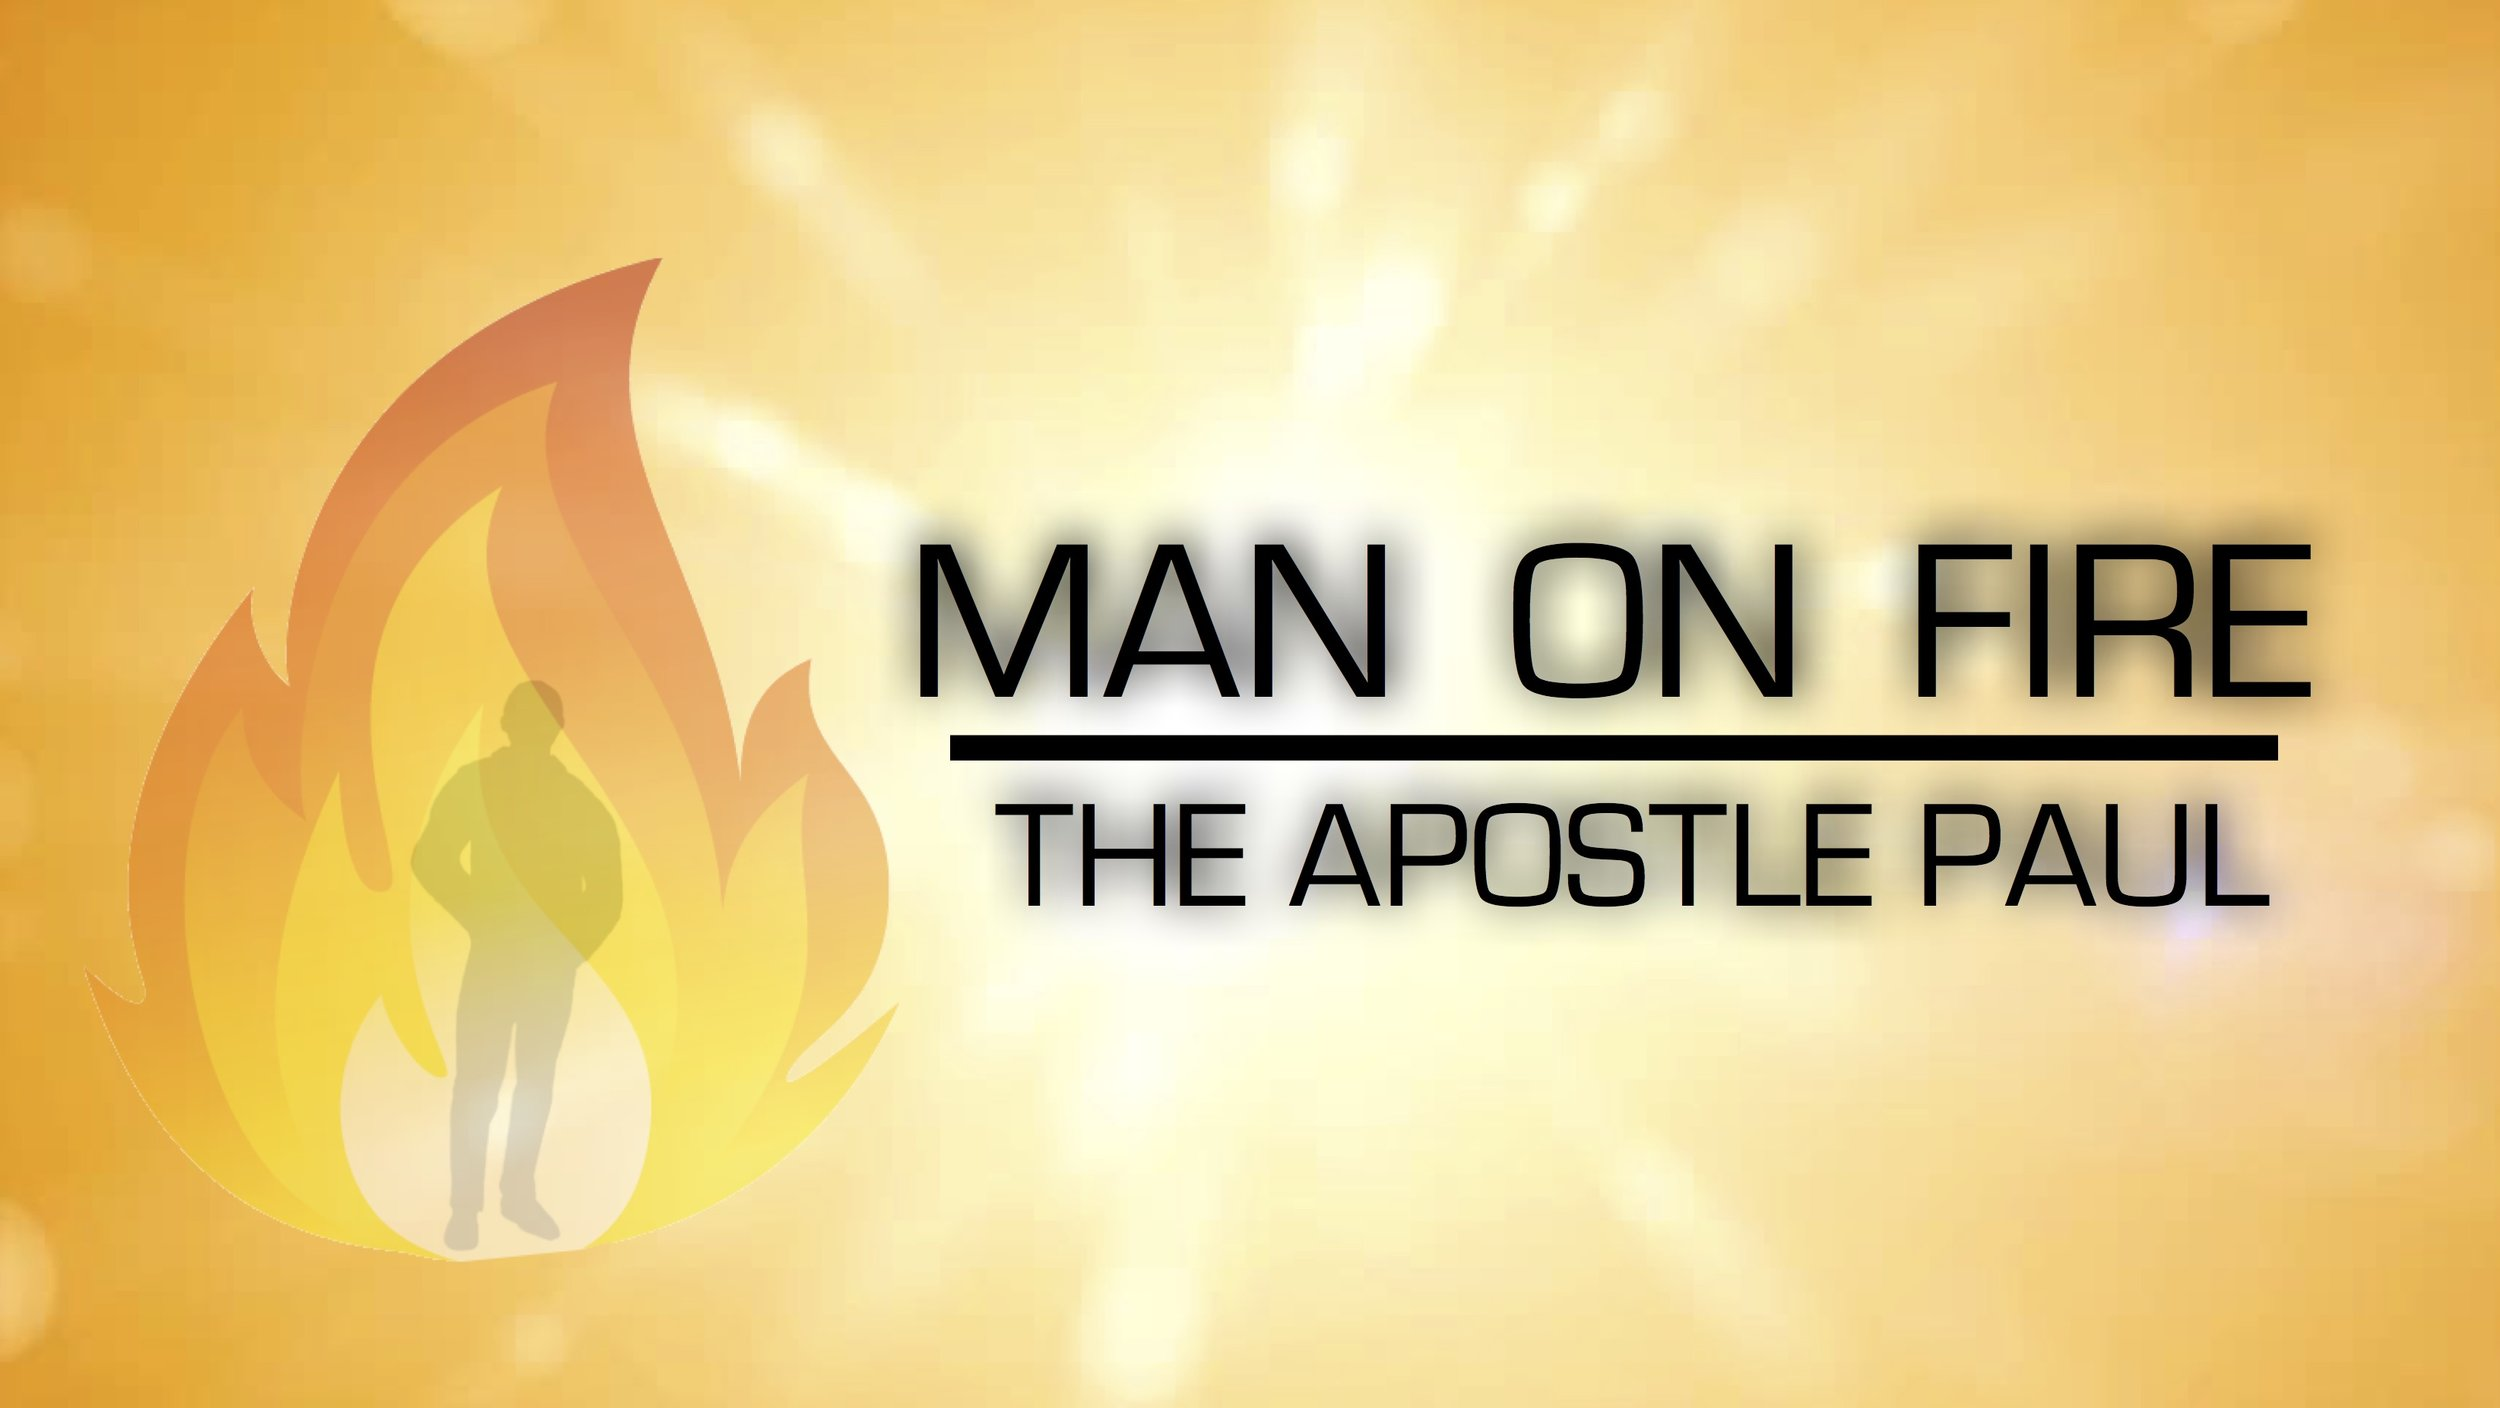 Man on Fire - Do you want God to use you to change the world?  God used an amazing man, named Paul, to turn his world upside down for Jesus.  Join us in the book of Acts as we see how a man on fire can set the world ablaze!